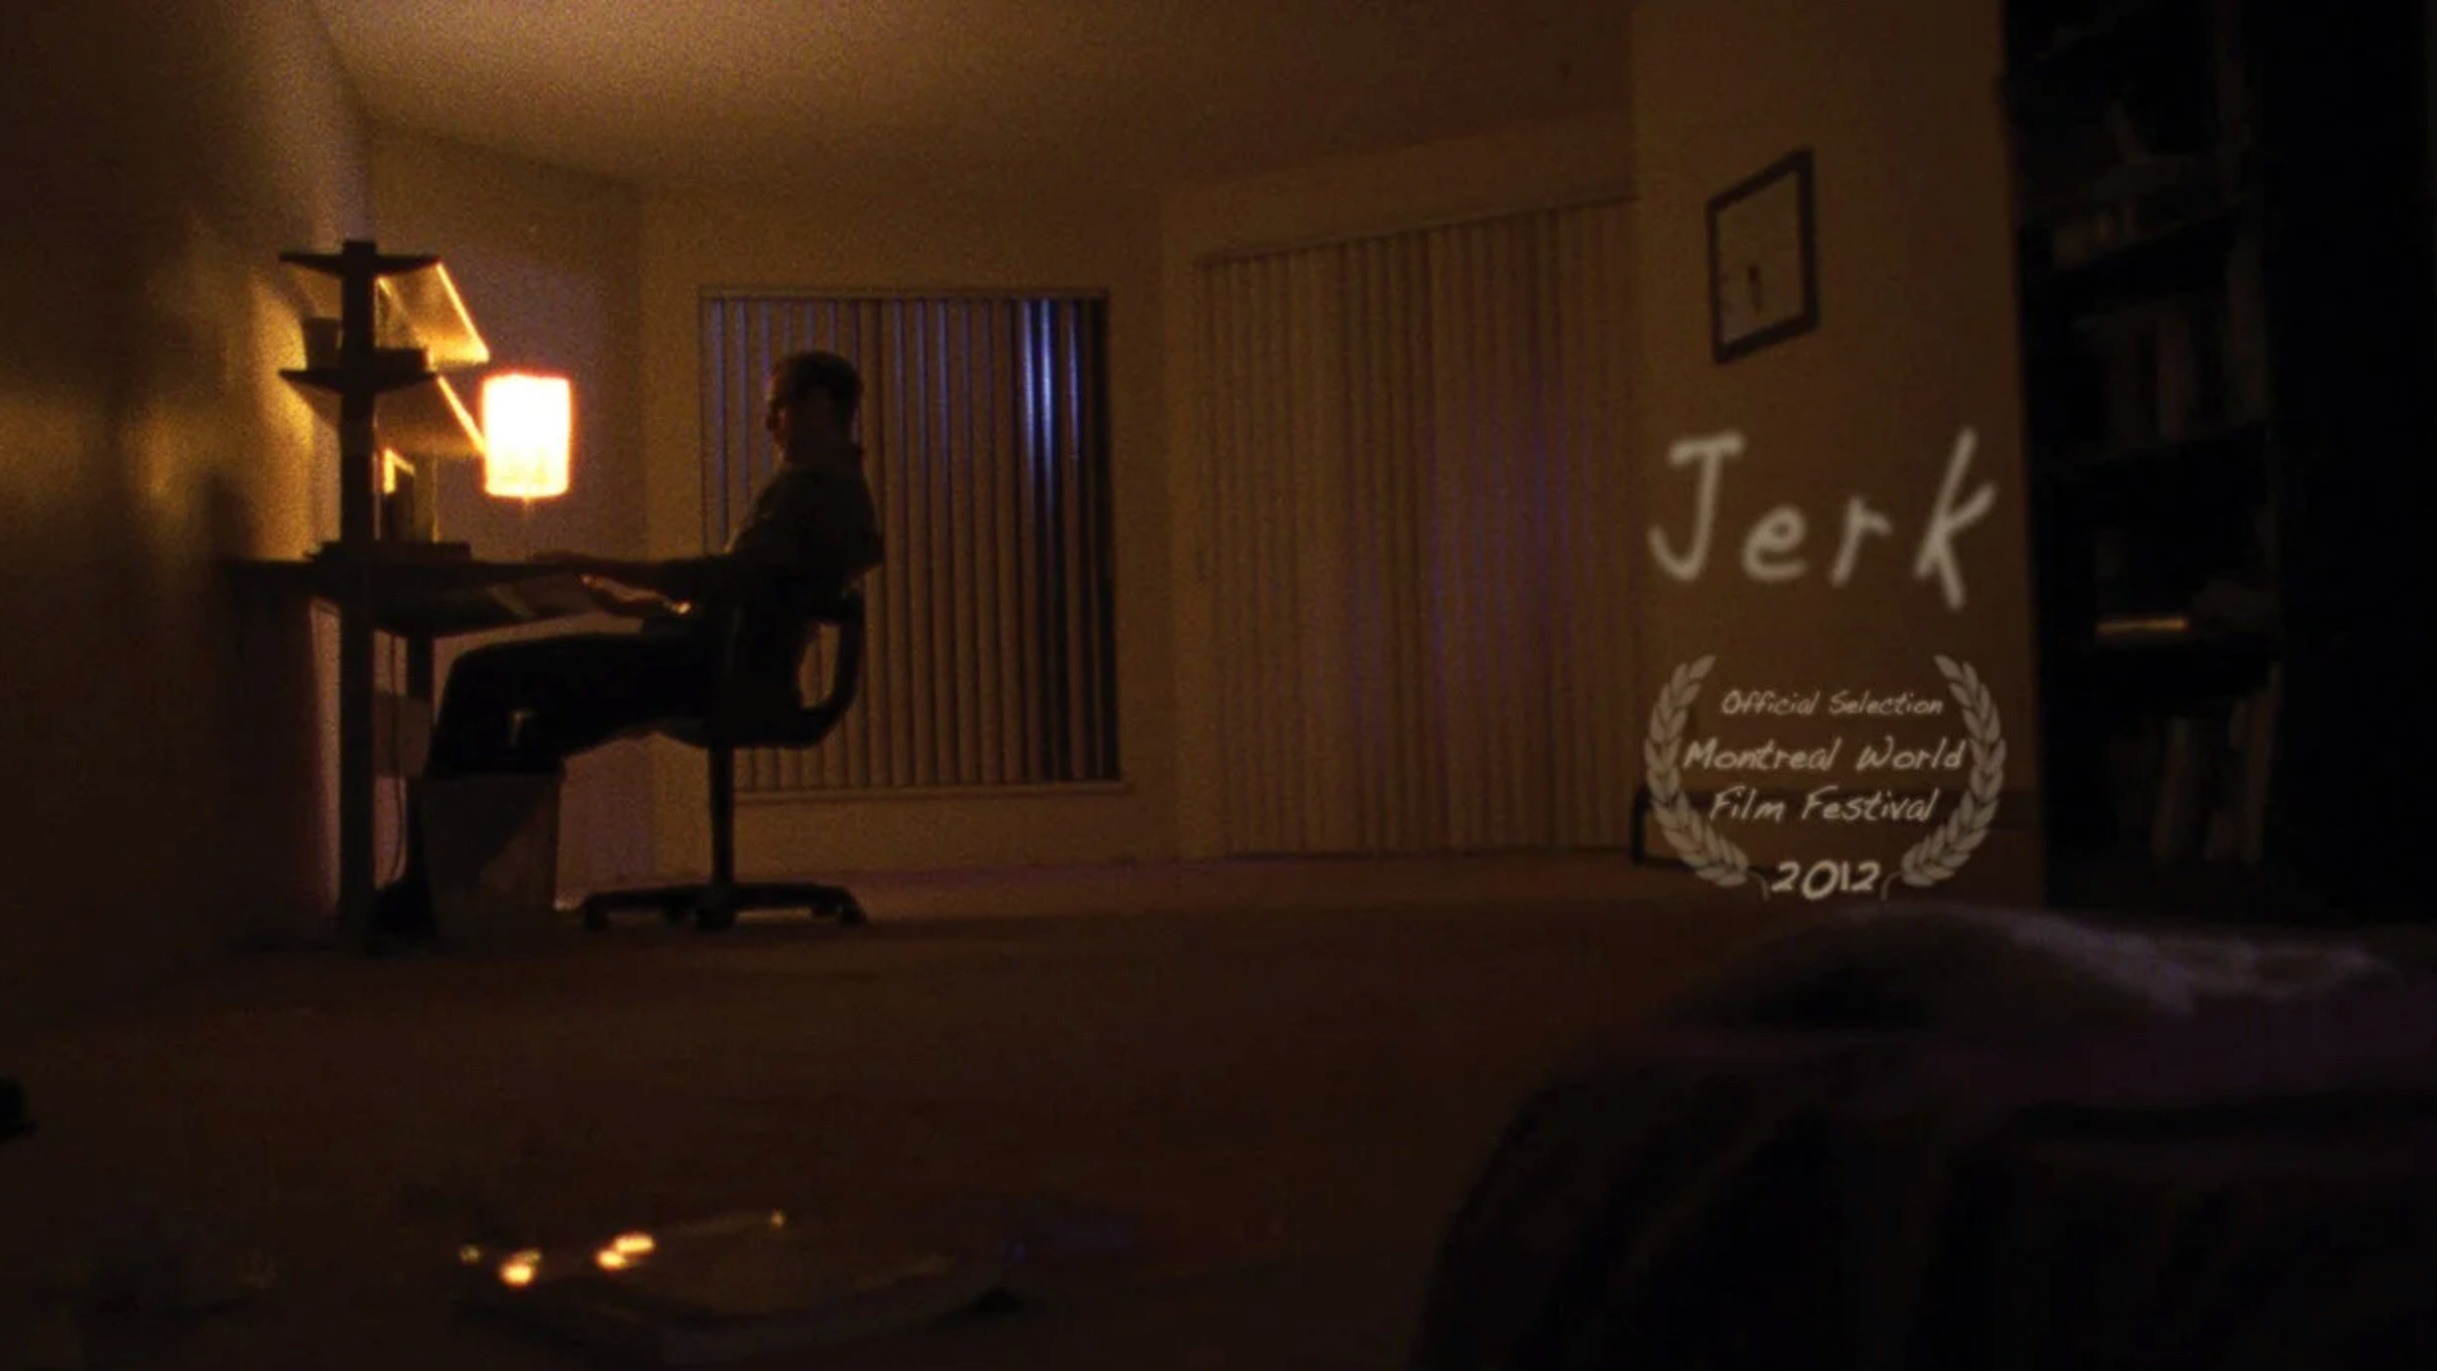 JERK - 2012 / Thriller / 19mins